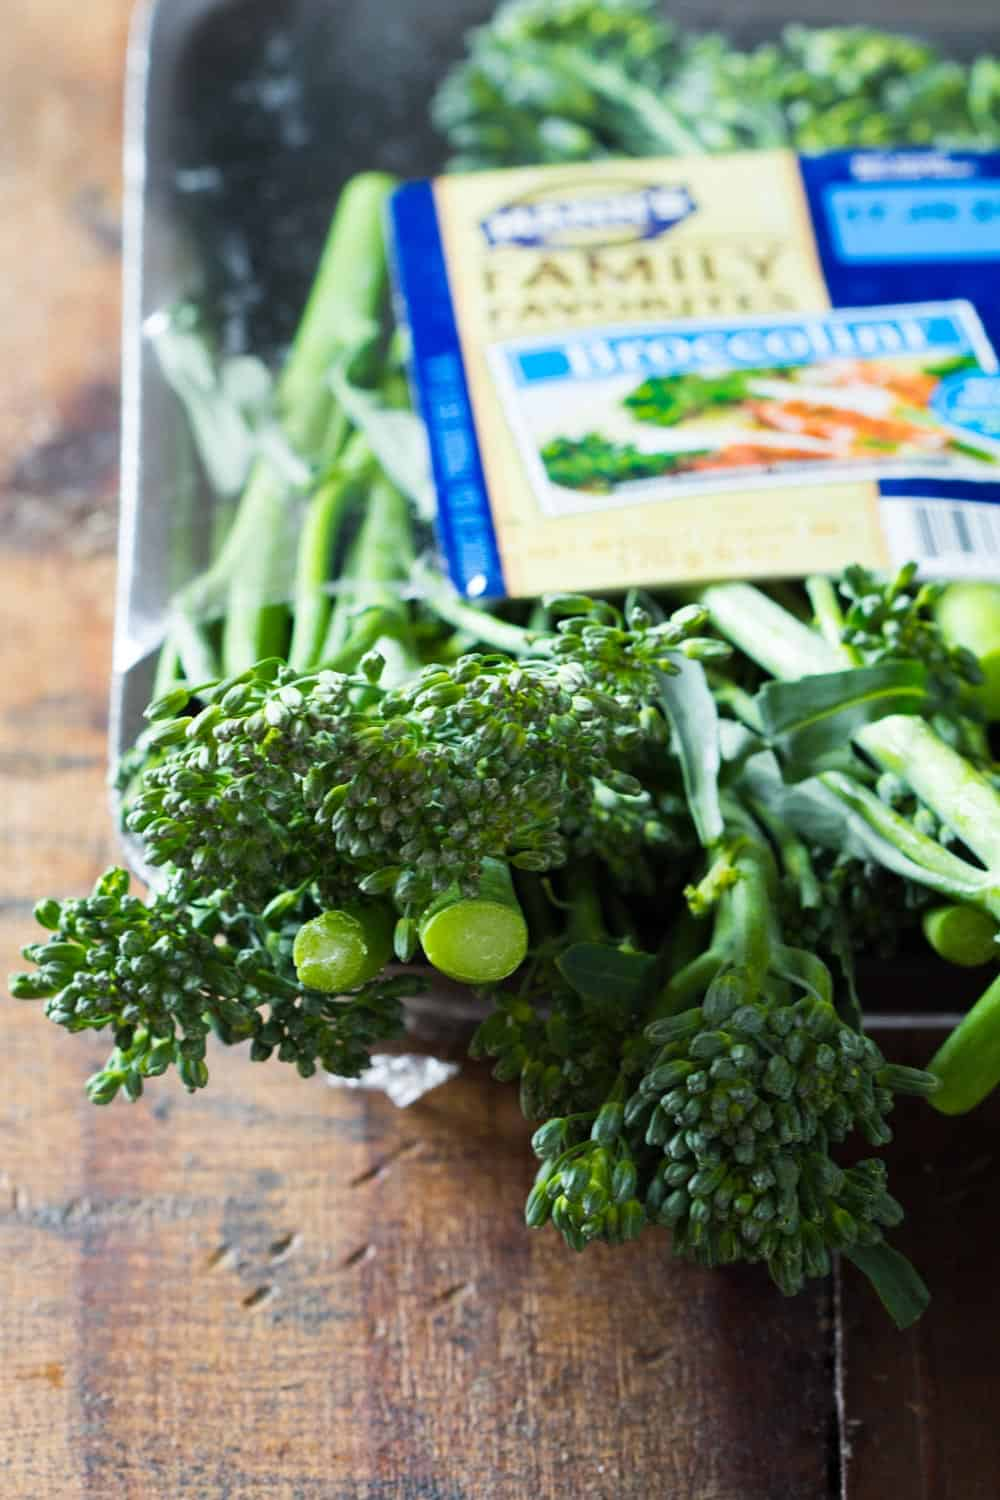 Close up of broccolini branches from an opened Mann's broccolini package